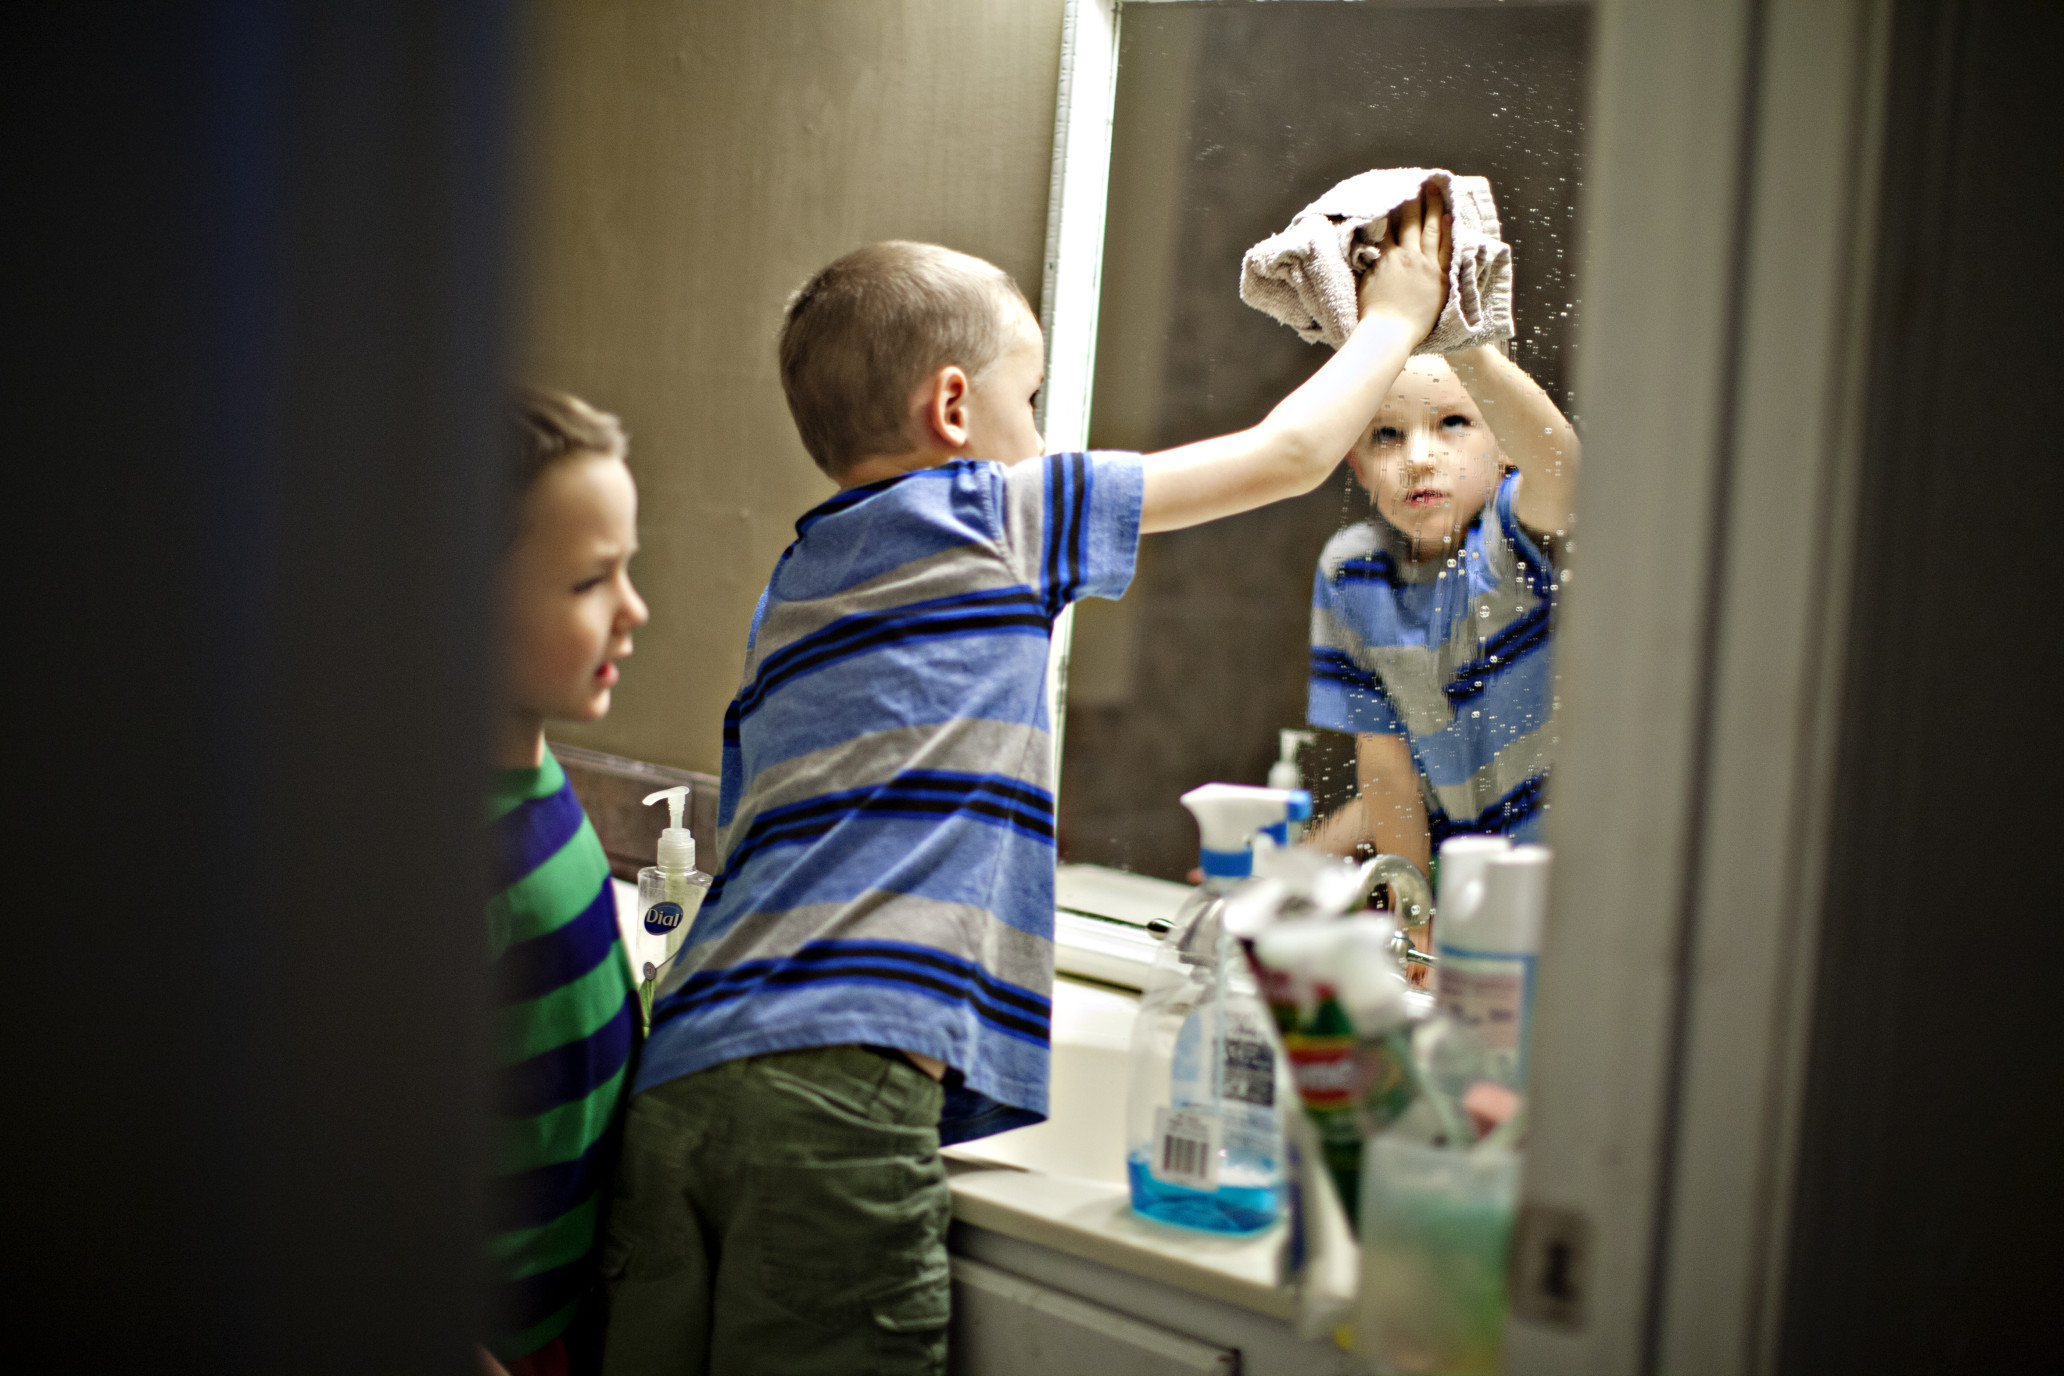 Cleaning and Organizing Kids Bathroom